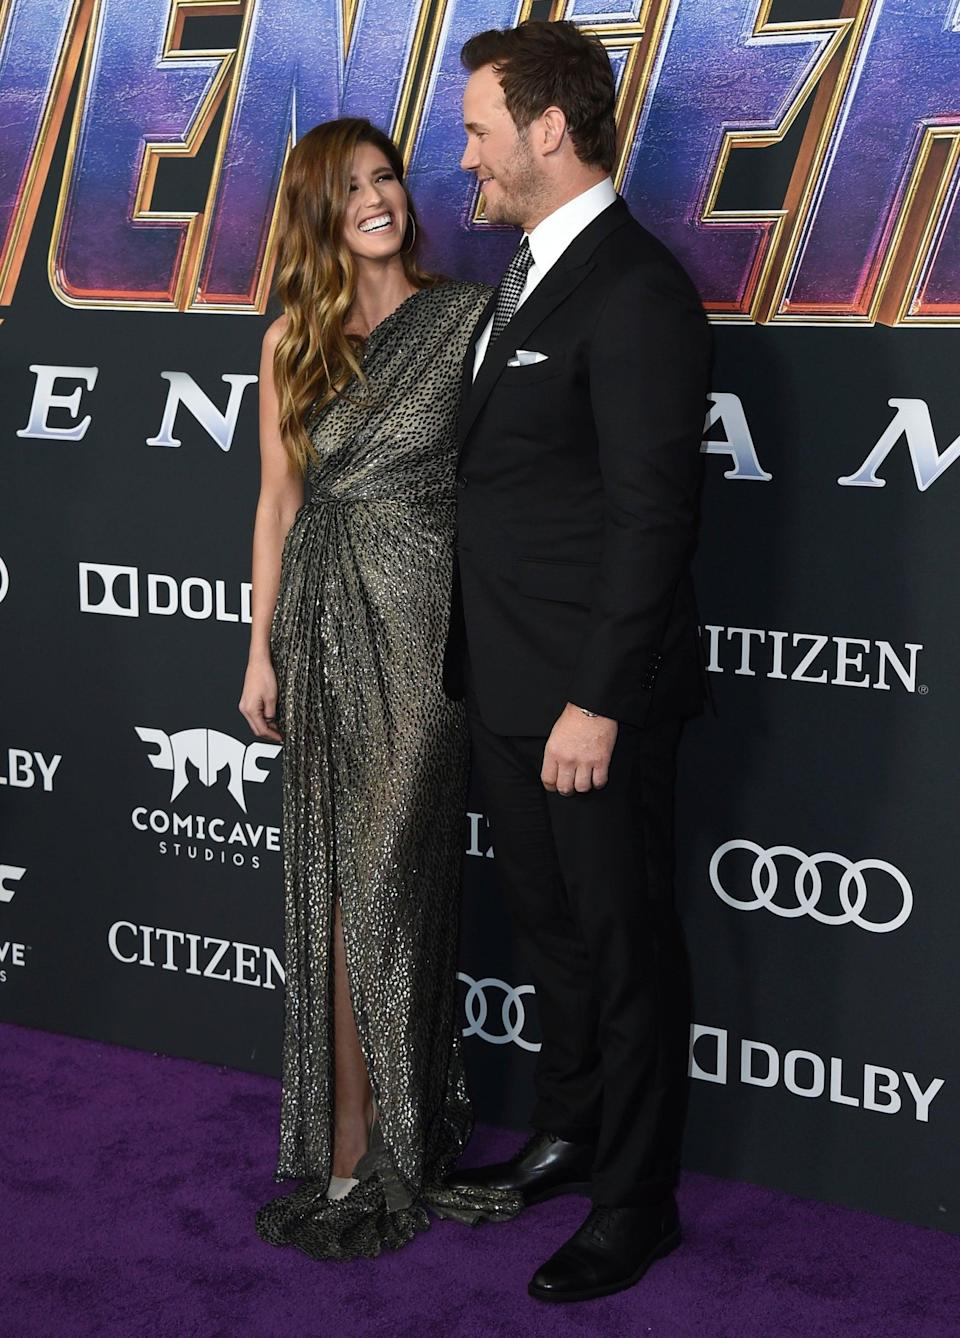 The couple at the premiere of Avengers: Endgame (Jordan Strauss/Invision/AP)